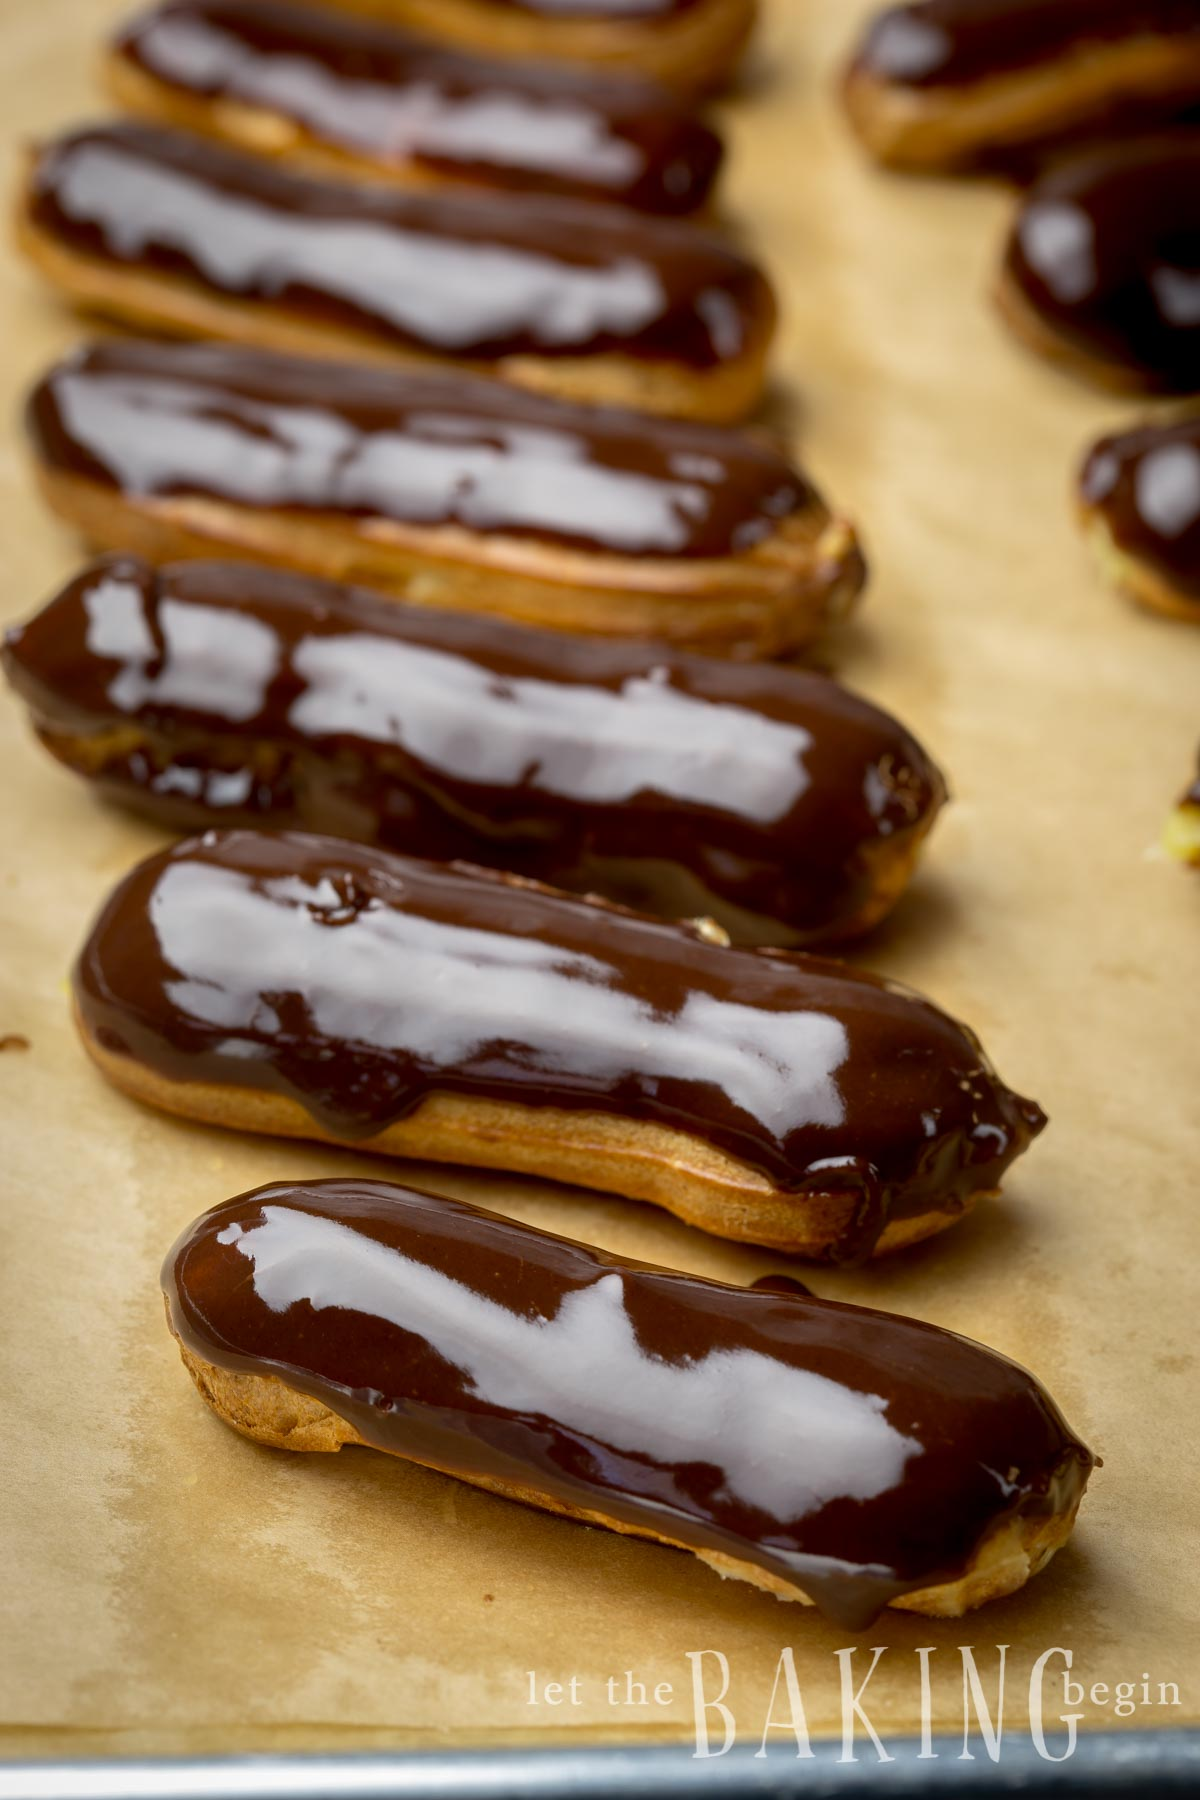 Classic Eclair is a Pate a Choux based hollow pastry shell filled with creamy custard, then dipped into a chocolate glaze. Simple, yet sophisticated and all around delicious! Learn the tips and tricks to making the perfect hollow shells and the creamiest custard filling